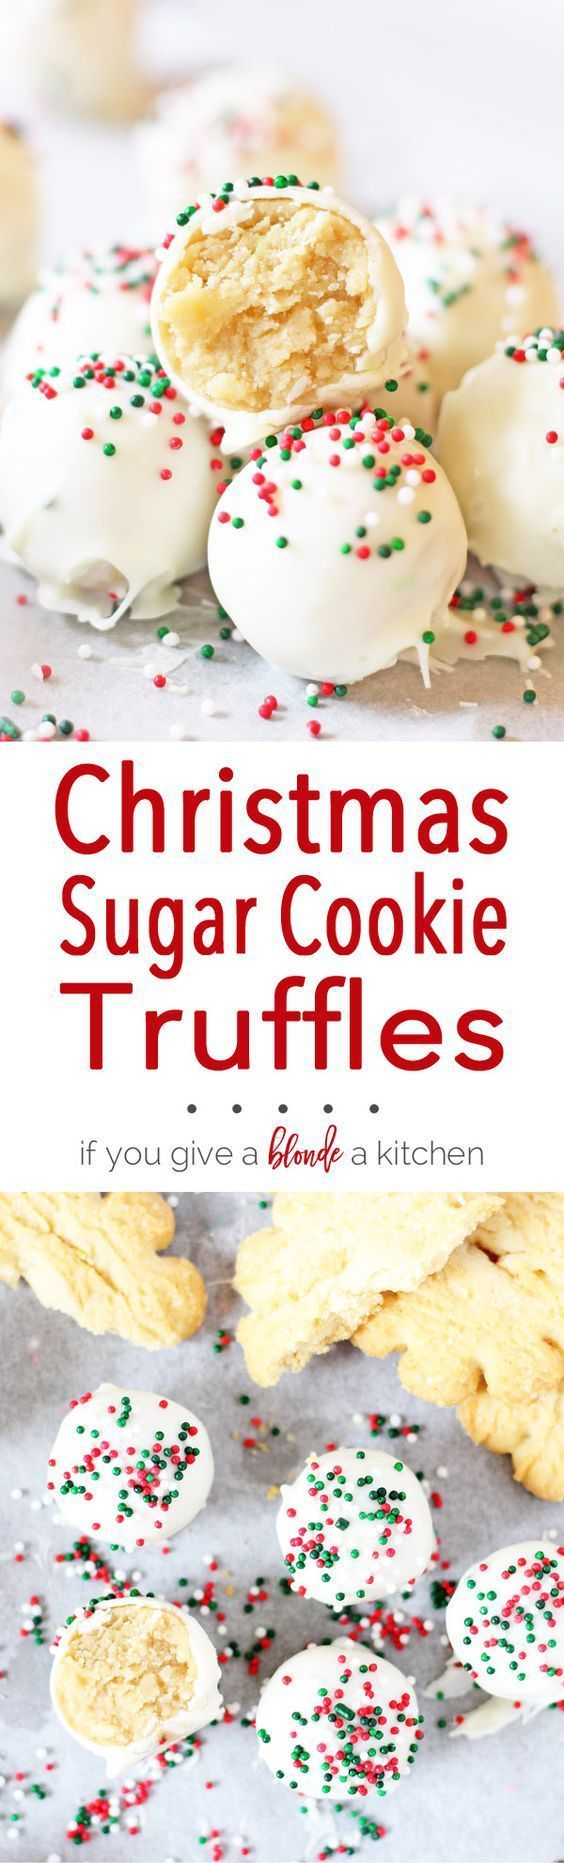 The BEST Christmas Cookies, Fudge, Candy, Barks and Brittles Recipes – Favorites for Holiday Treats Gift Plates and Goodies Bags!